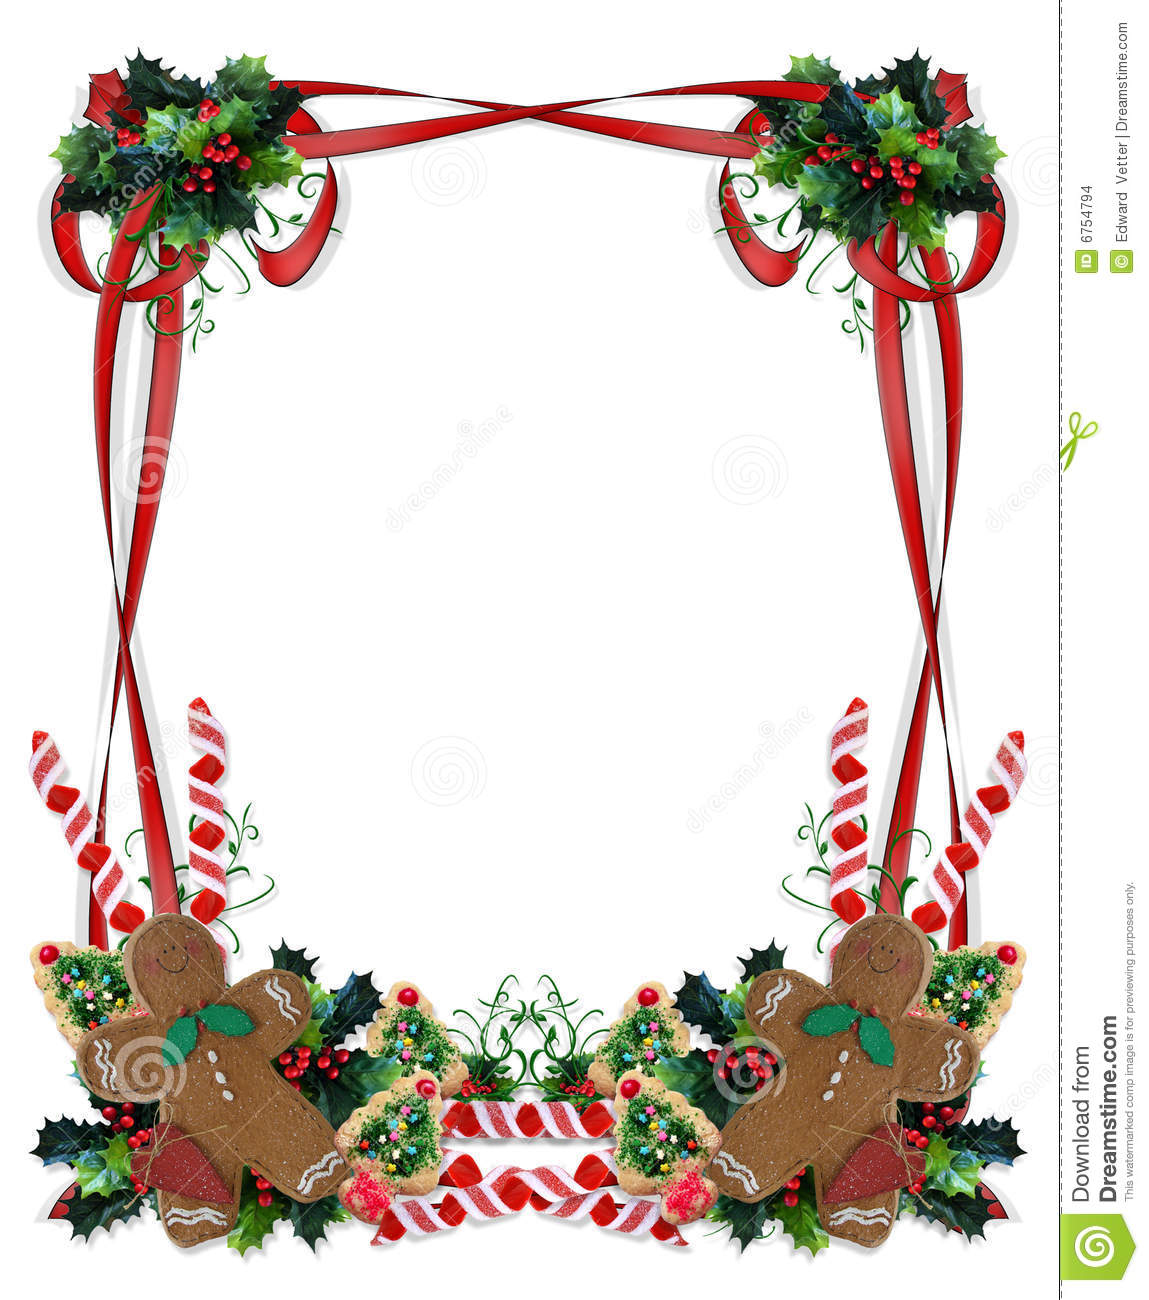 Christmas Borders Clipart.Christmas Cookies And Treats Border Stock Illustration